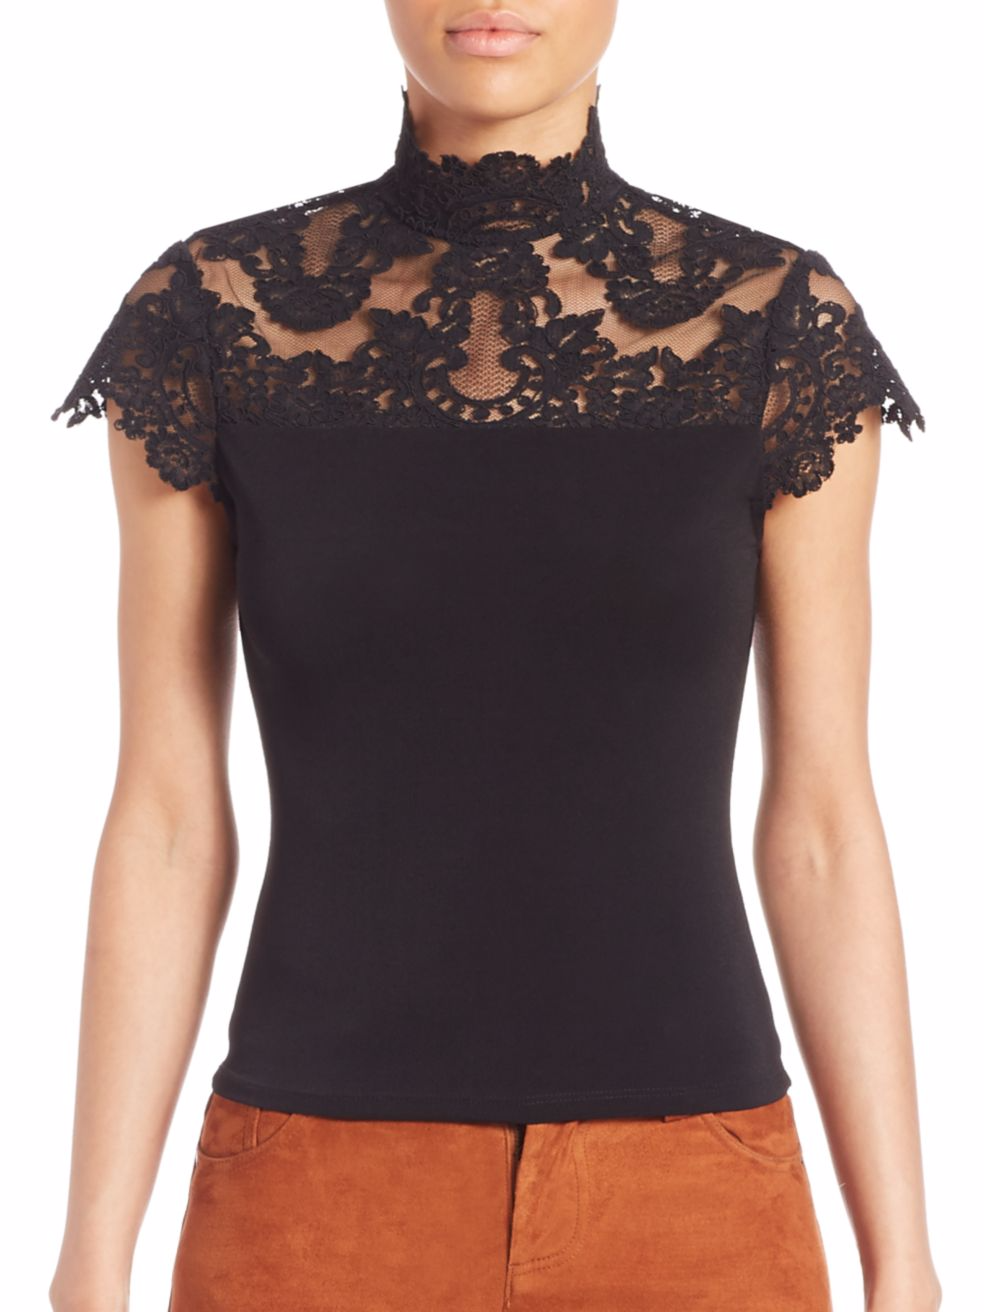 results for lace yoke top Save this search. Postage to Items in search results. SPONSORED Marks & Spencer Ladies Top ~ Black with Lace Yoke ~ Size 16 ~ New. New (other) £ + £ postage; Customs services and international tracking provided.